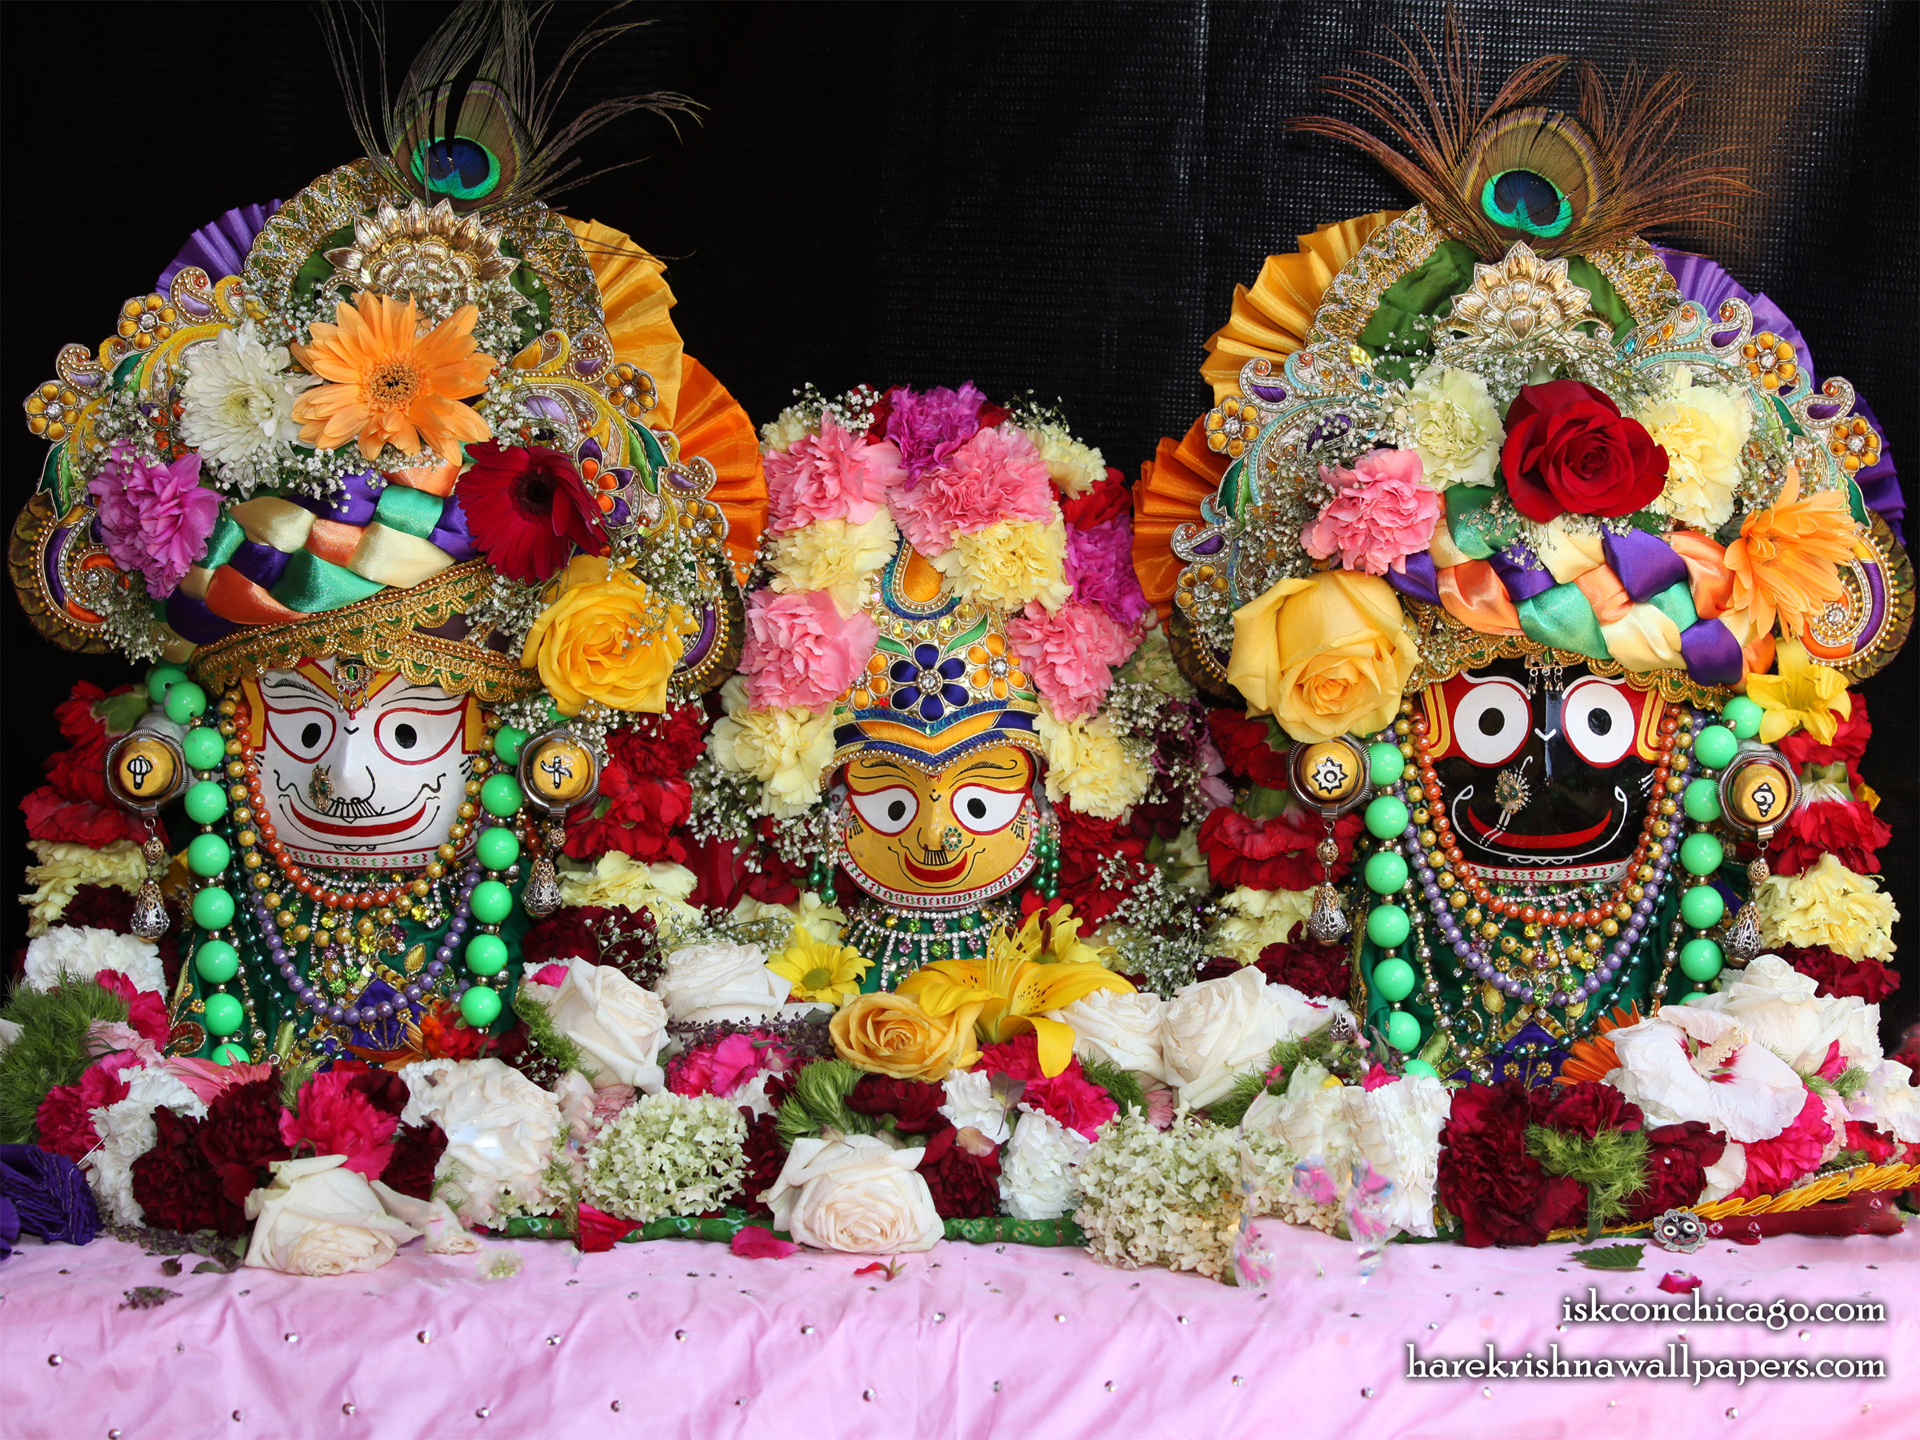 Jagannath Baladeva Subhadra Wallpaper (001) Size 1920x1440 Download